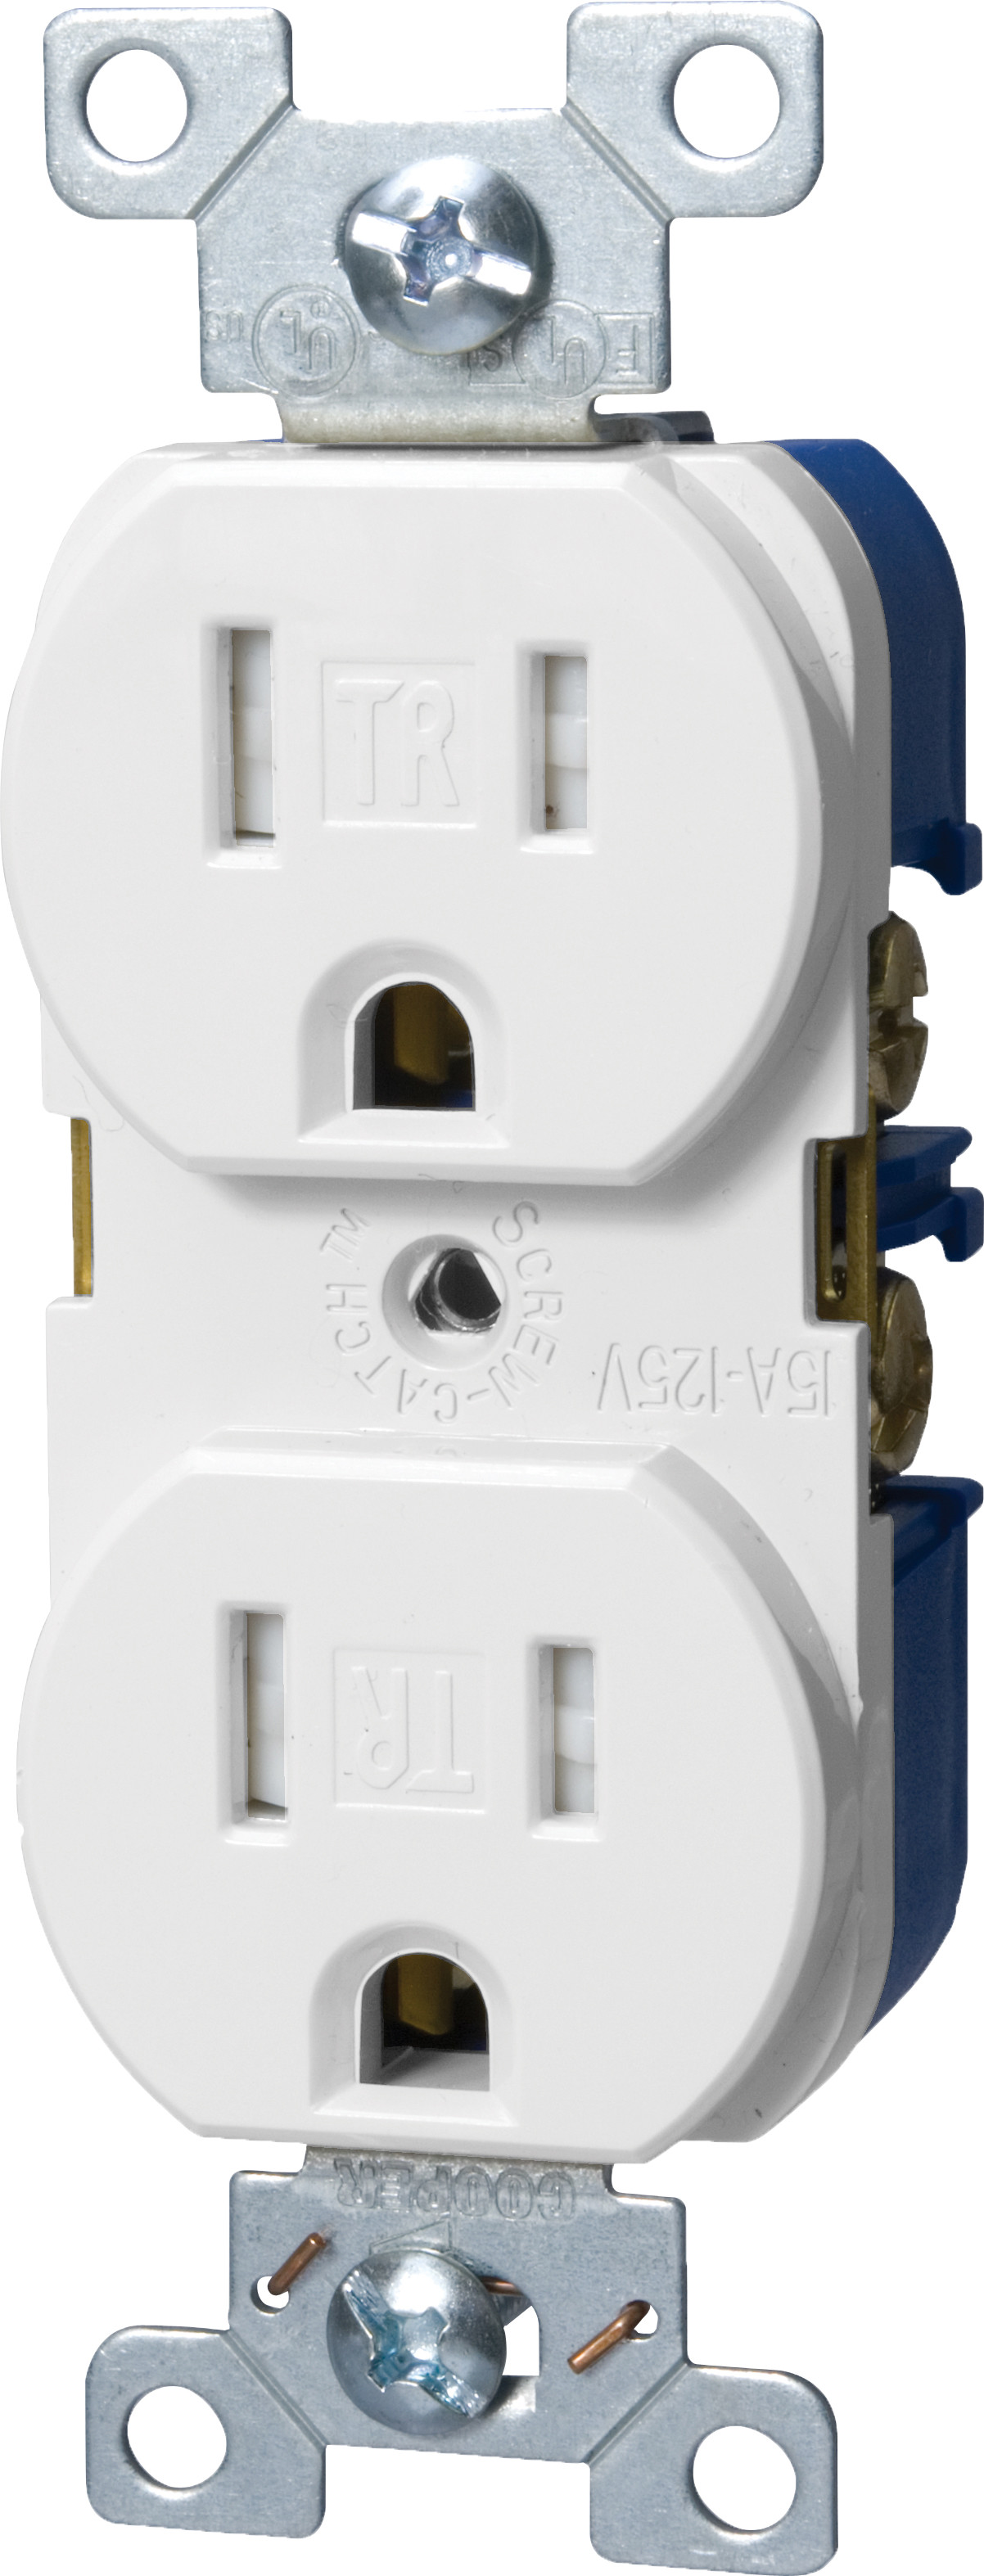 Cooper Wiring Trbr15w Bxsp Tamper Resistant Nema 5 15r Duplex Receptacle Tap To Expand